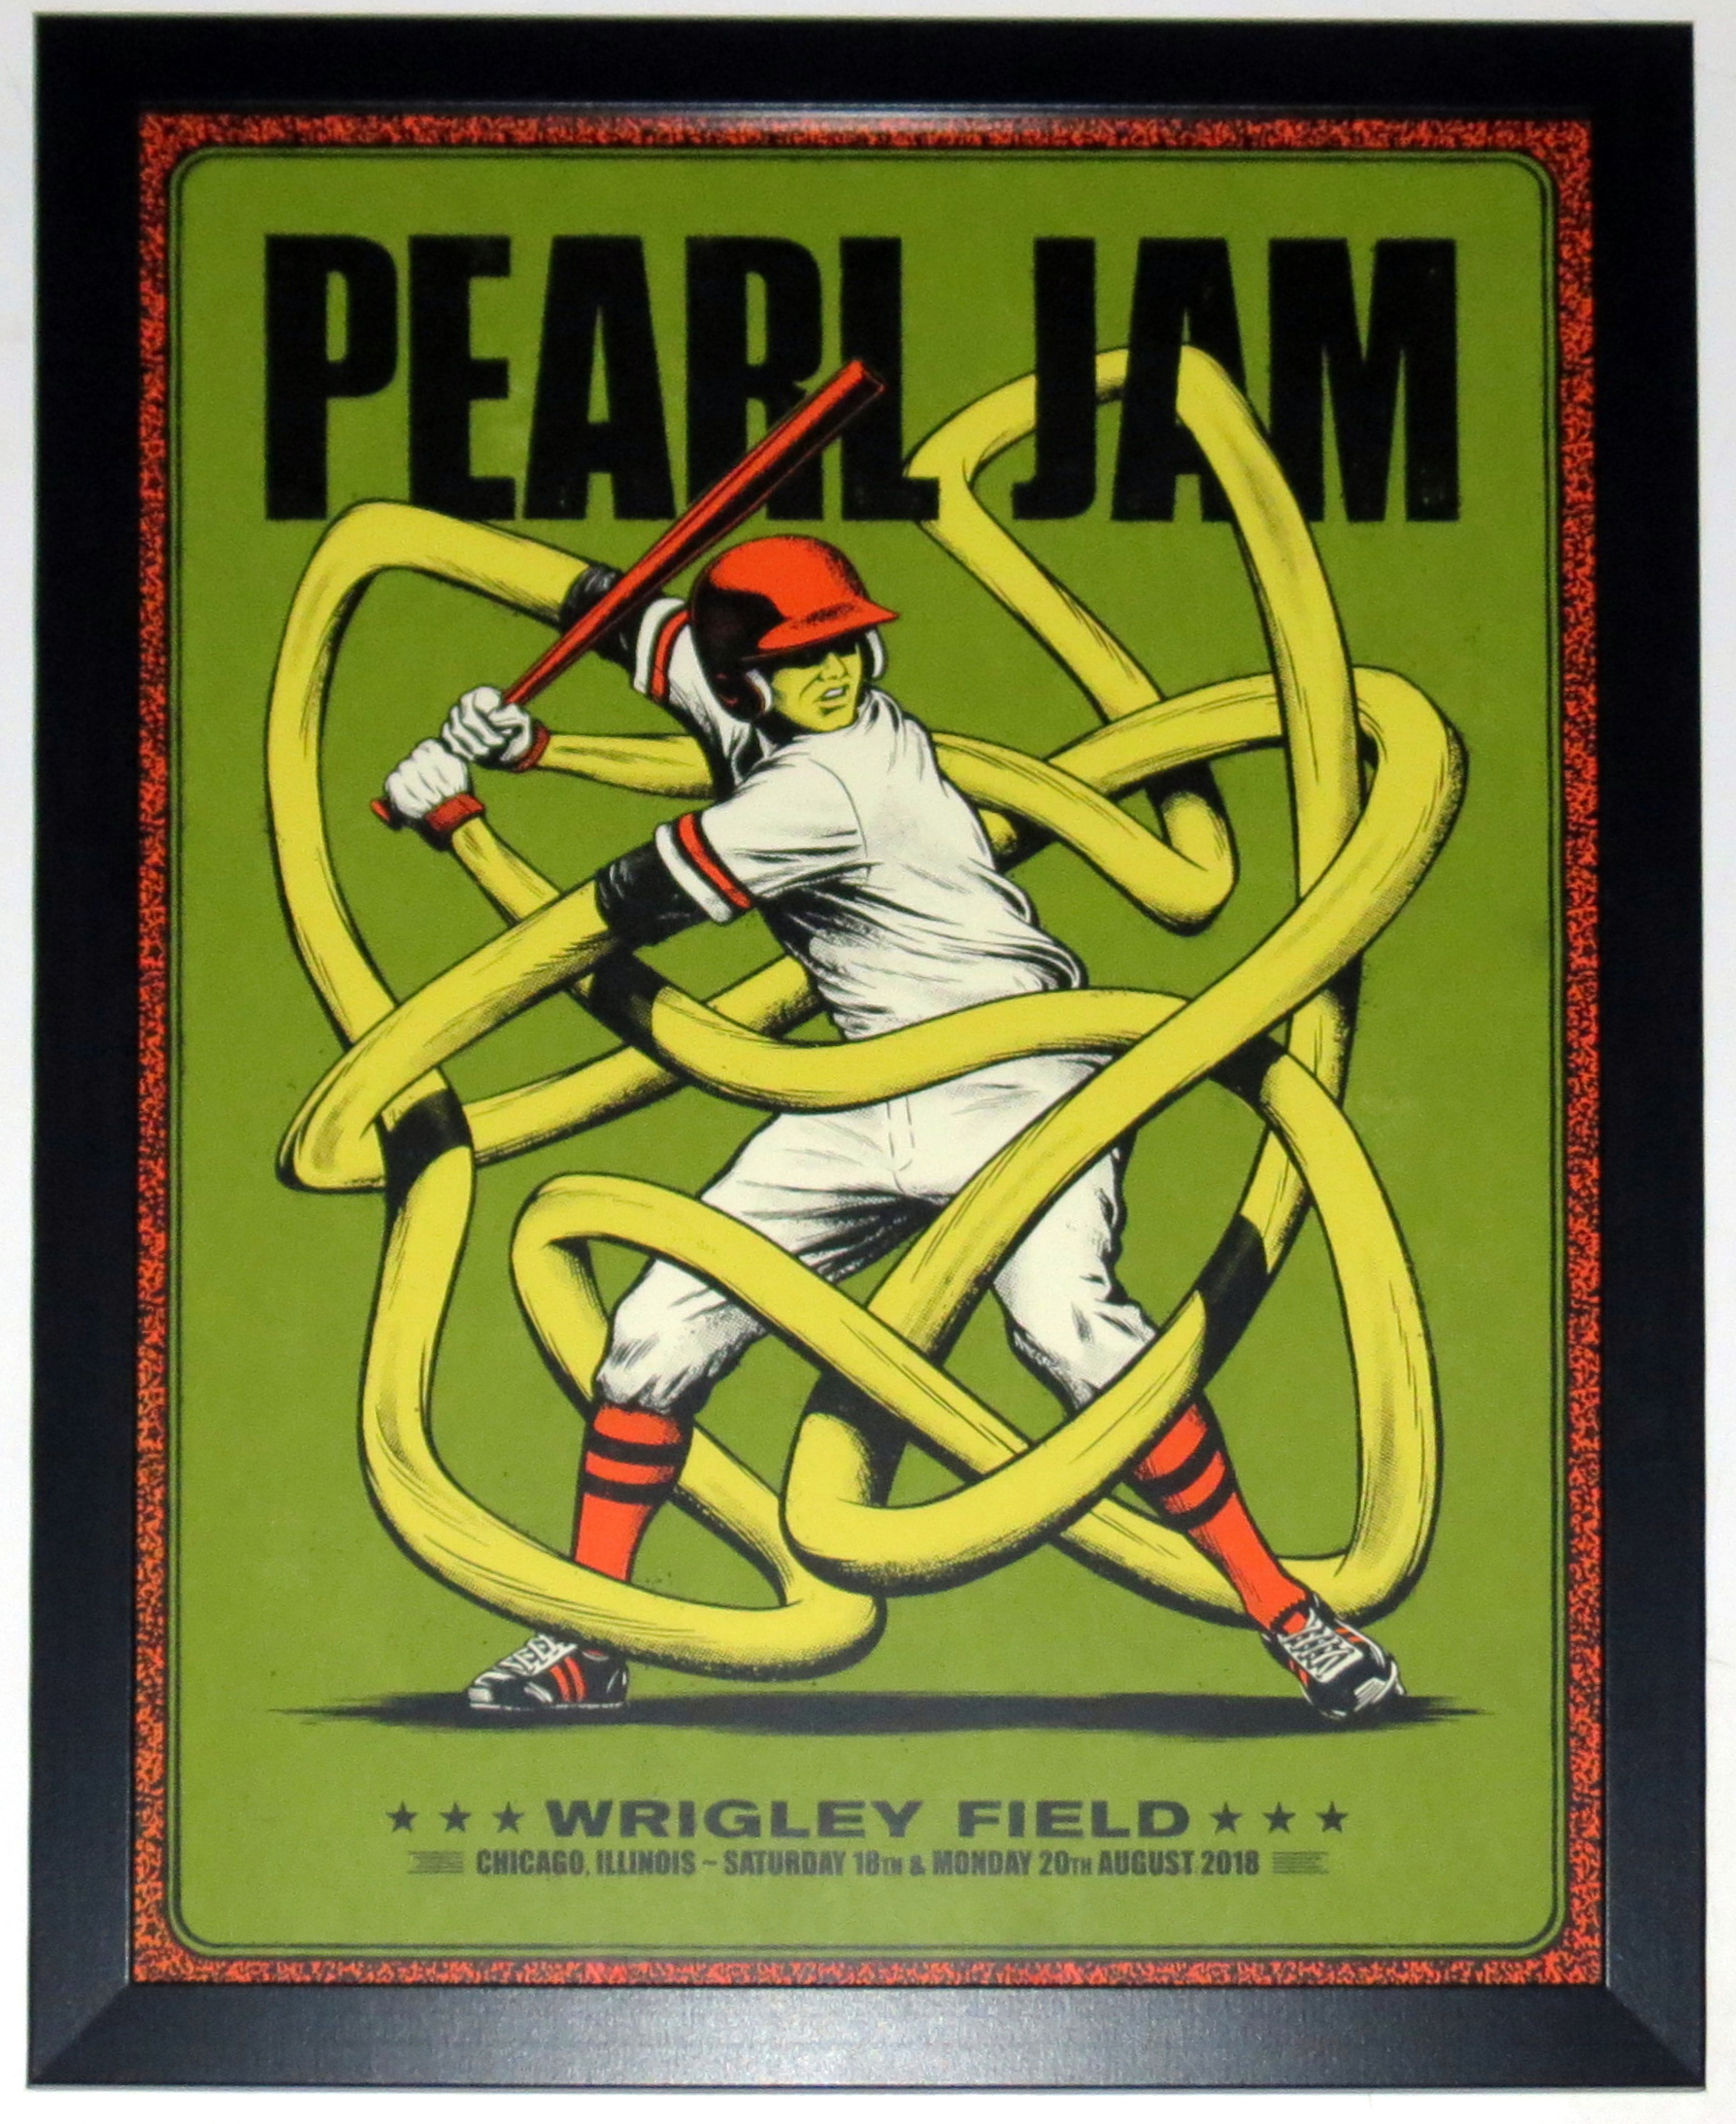 Pearl Jam 2018 Wrigley Field Chicago Tour Poster 8/18/18 8/20/18 Andrew Fairclough - Professionally Framed